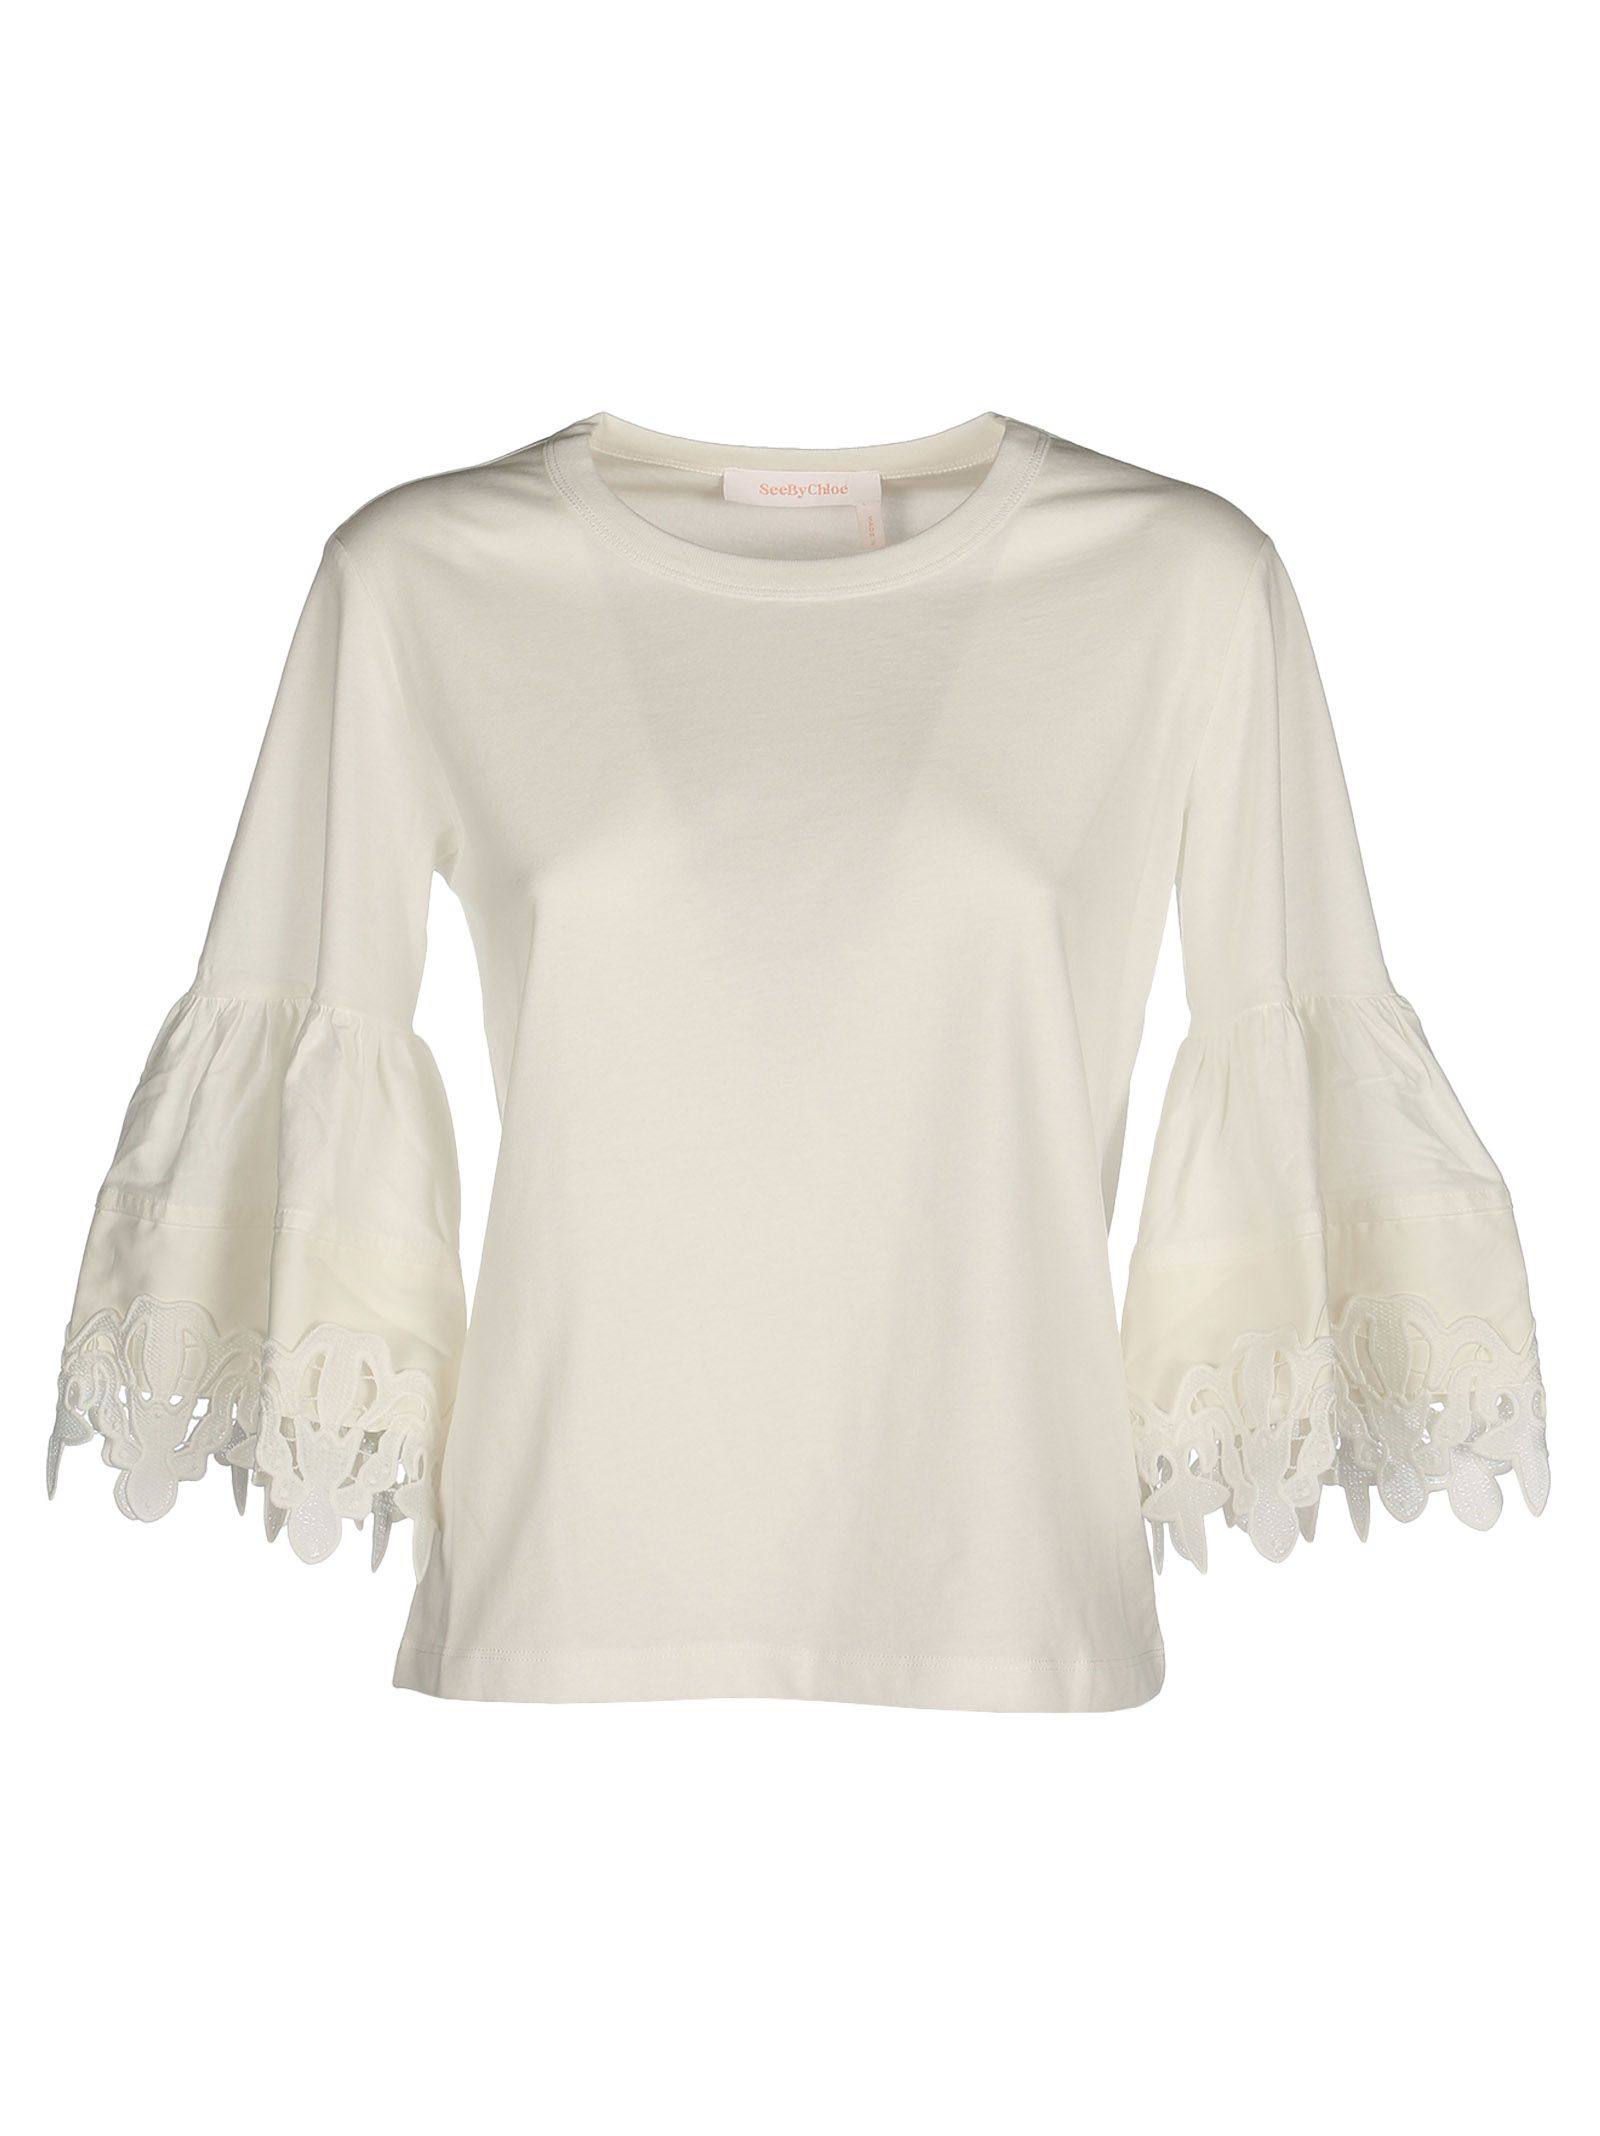 See By Chloé Open Embroidery Bell Sleeve T-shirt